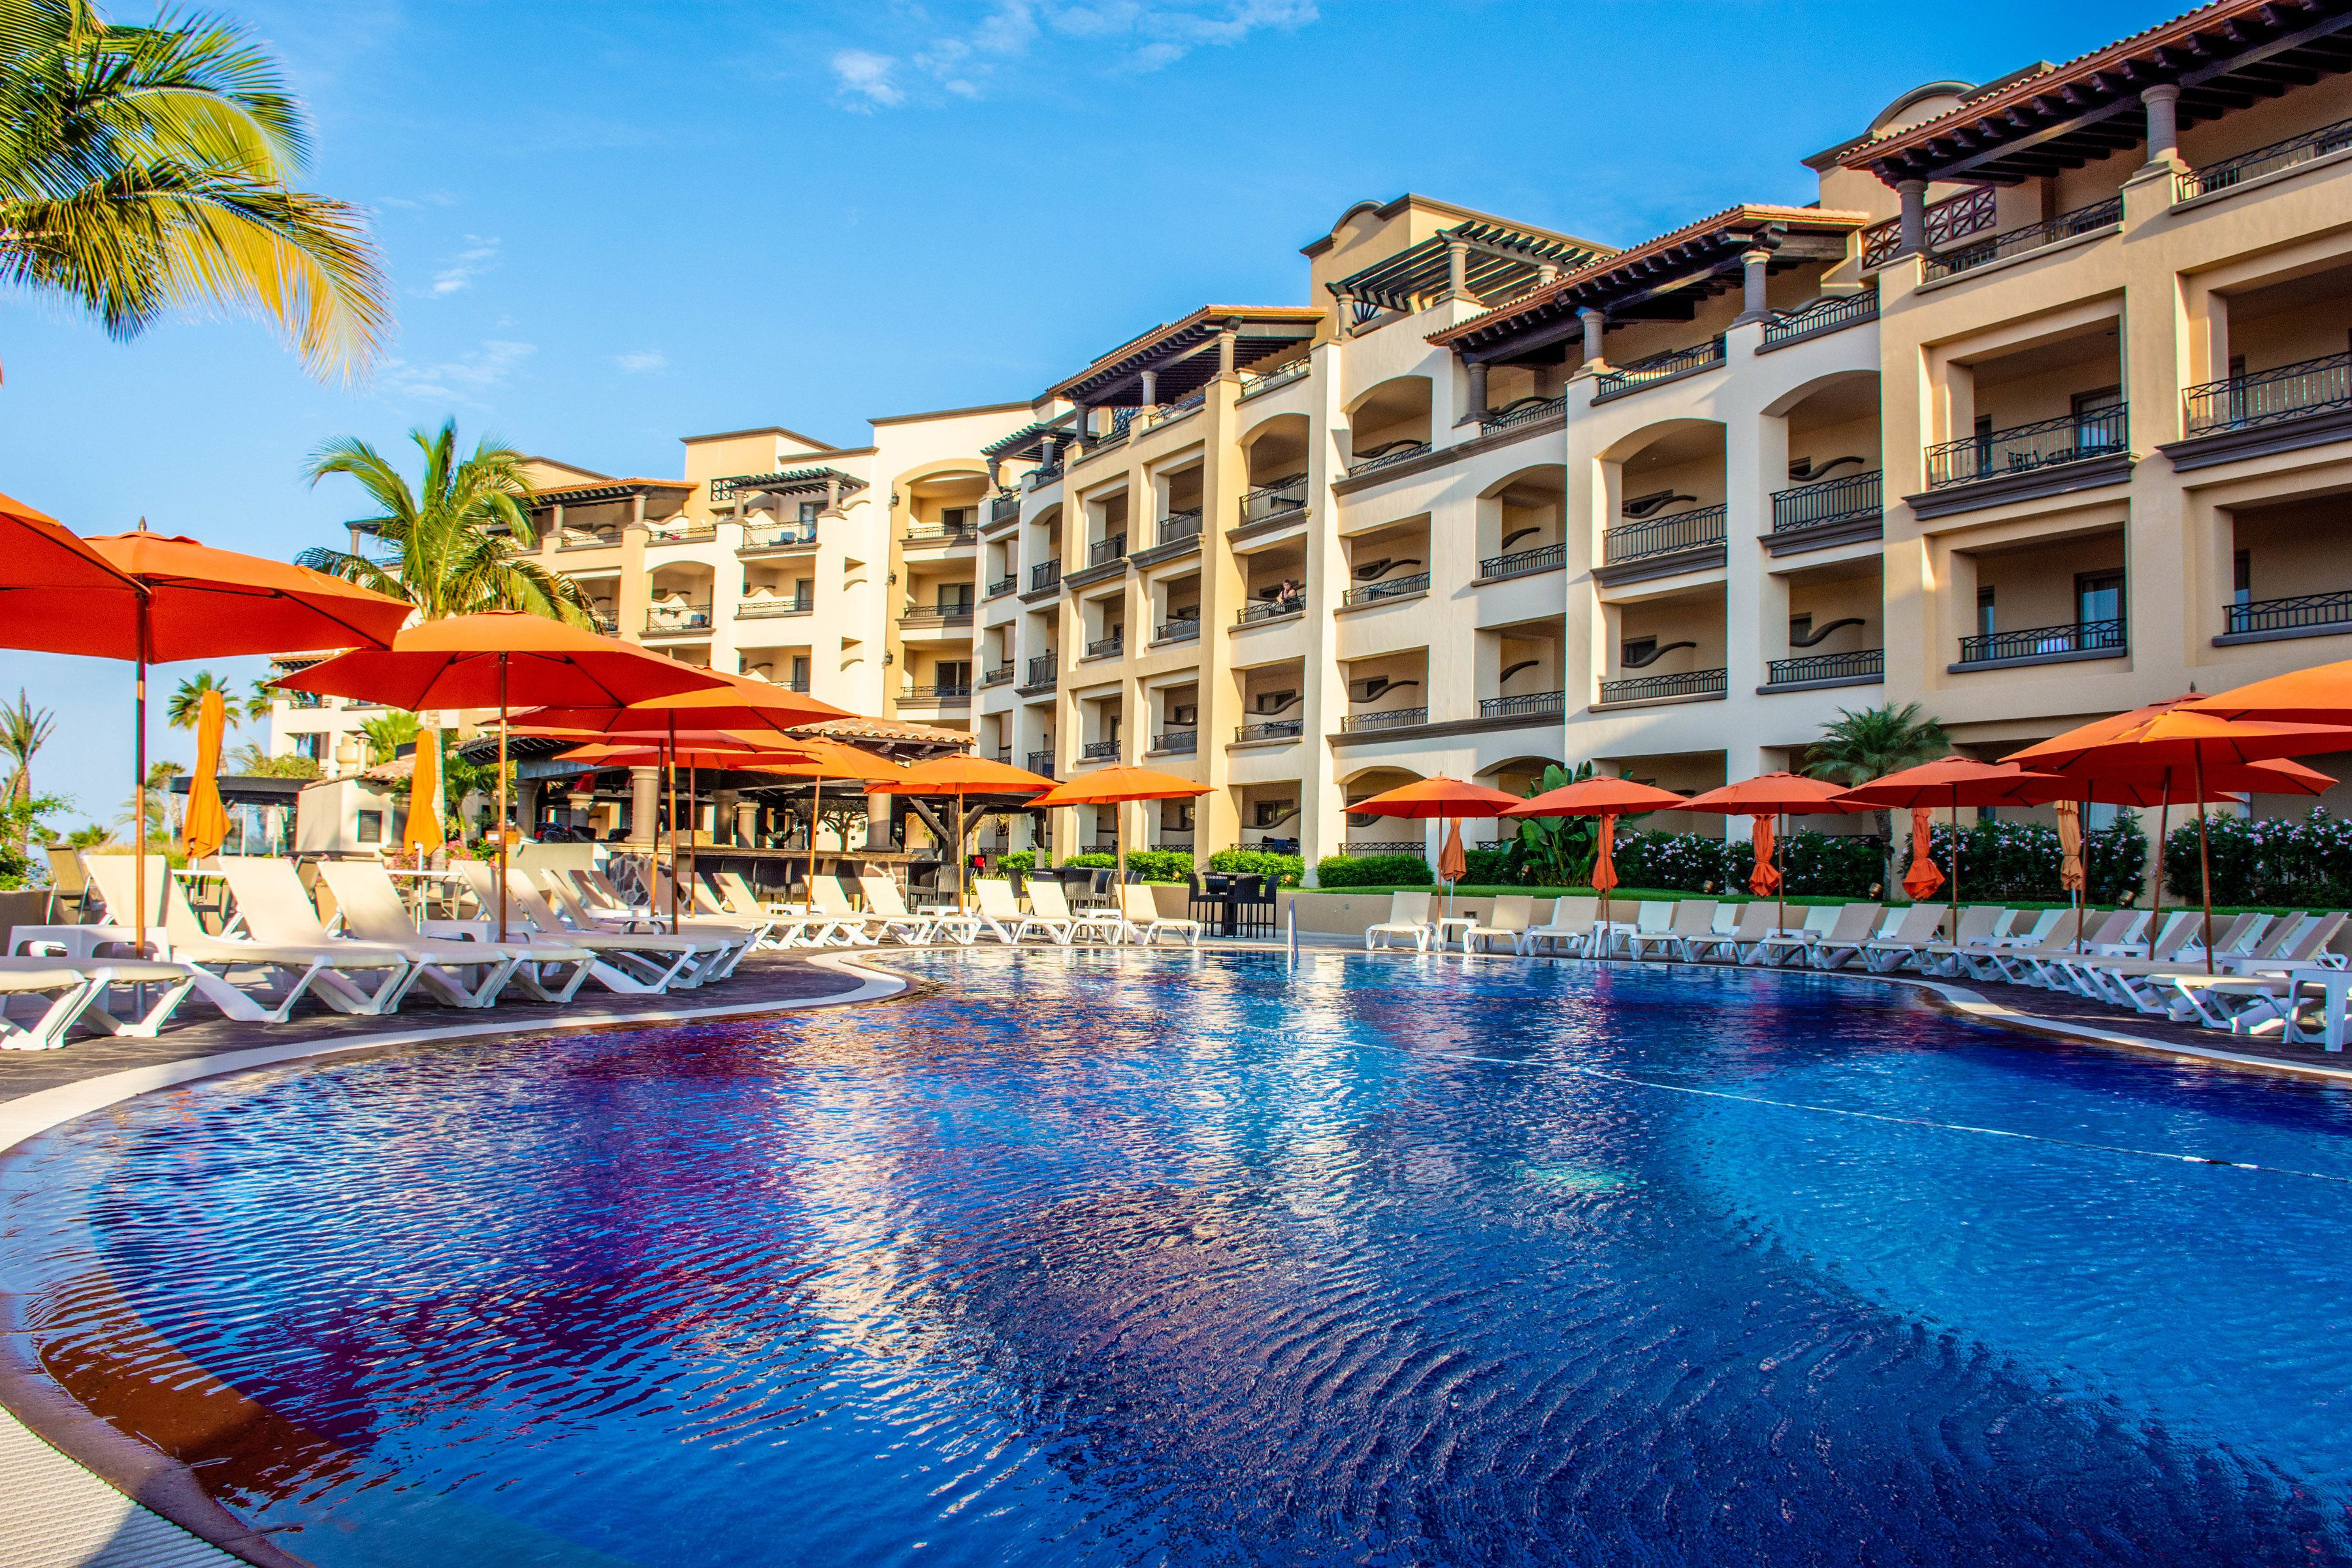 Situated within the exclusive residential development of Quivira Los Cabos  and overlooking… | Pueblo bonito sunset beach, Cabo san lucas resort,  Sunset beach resort